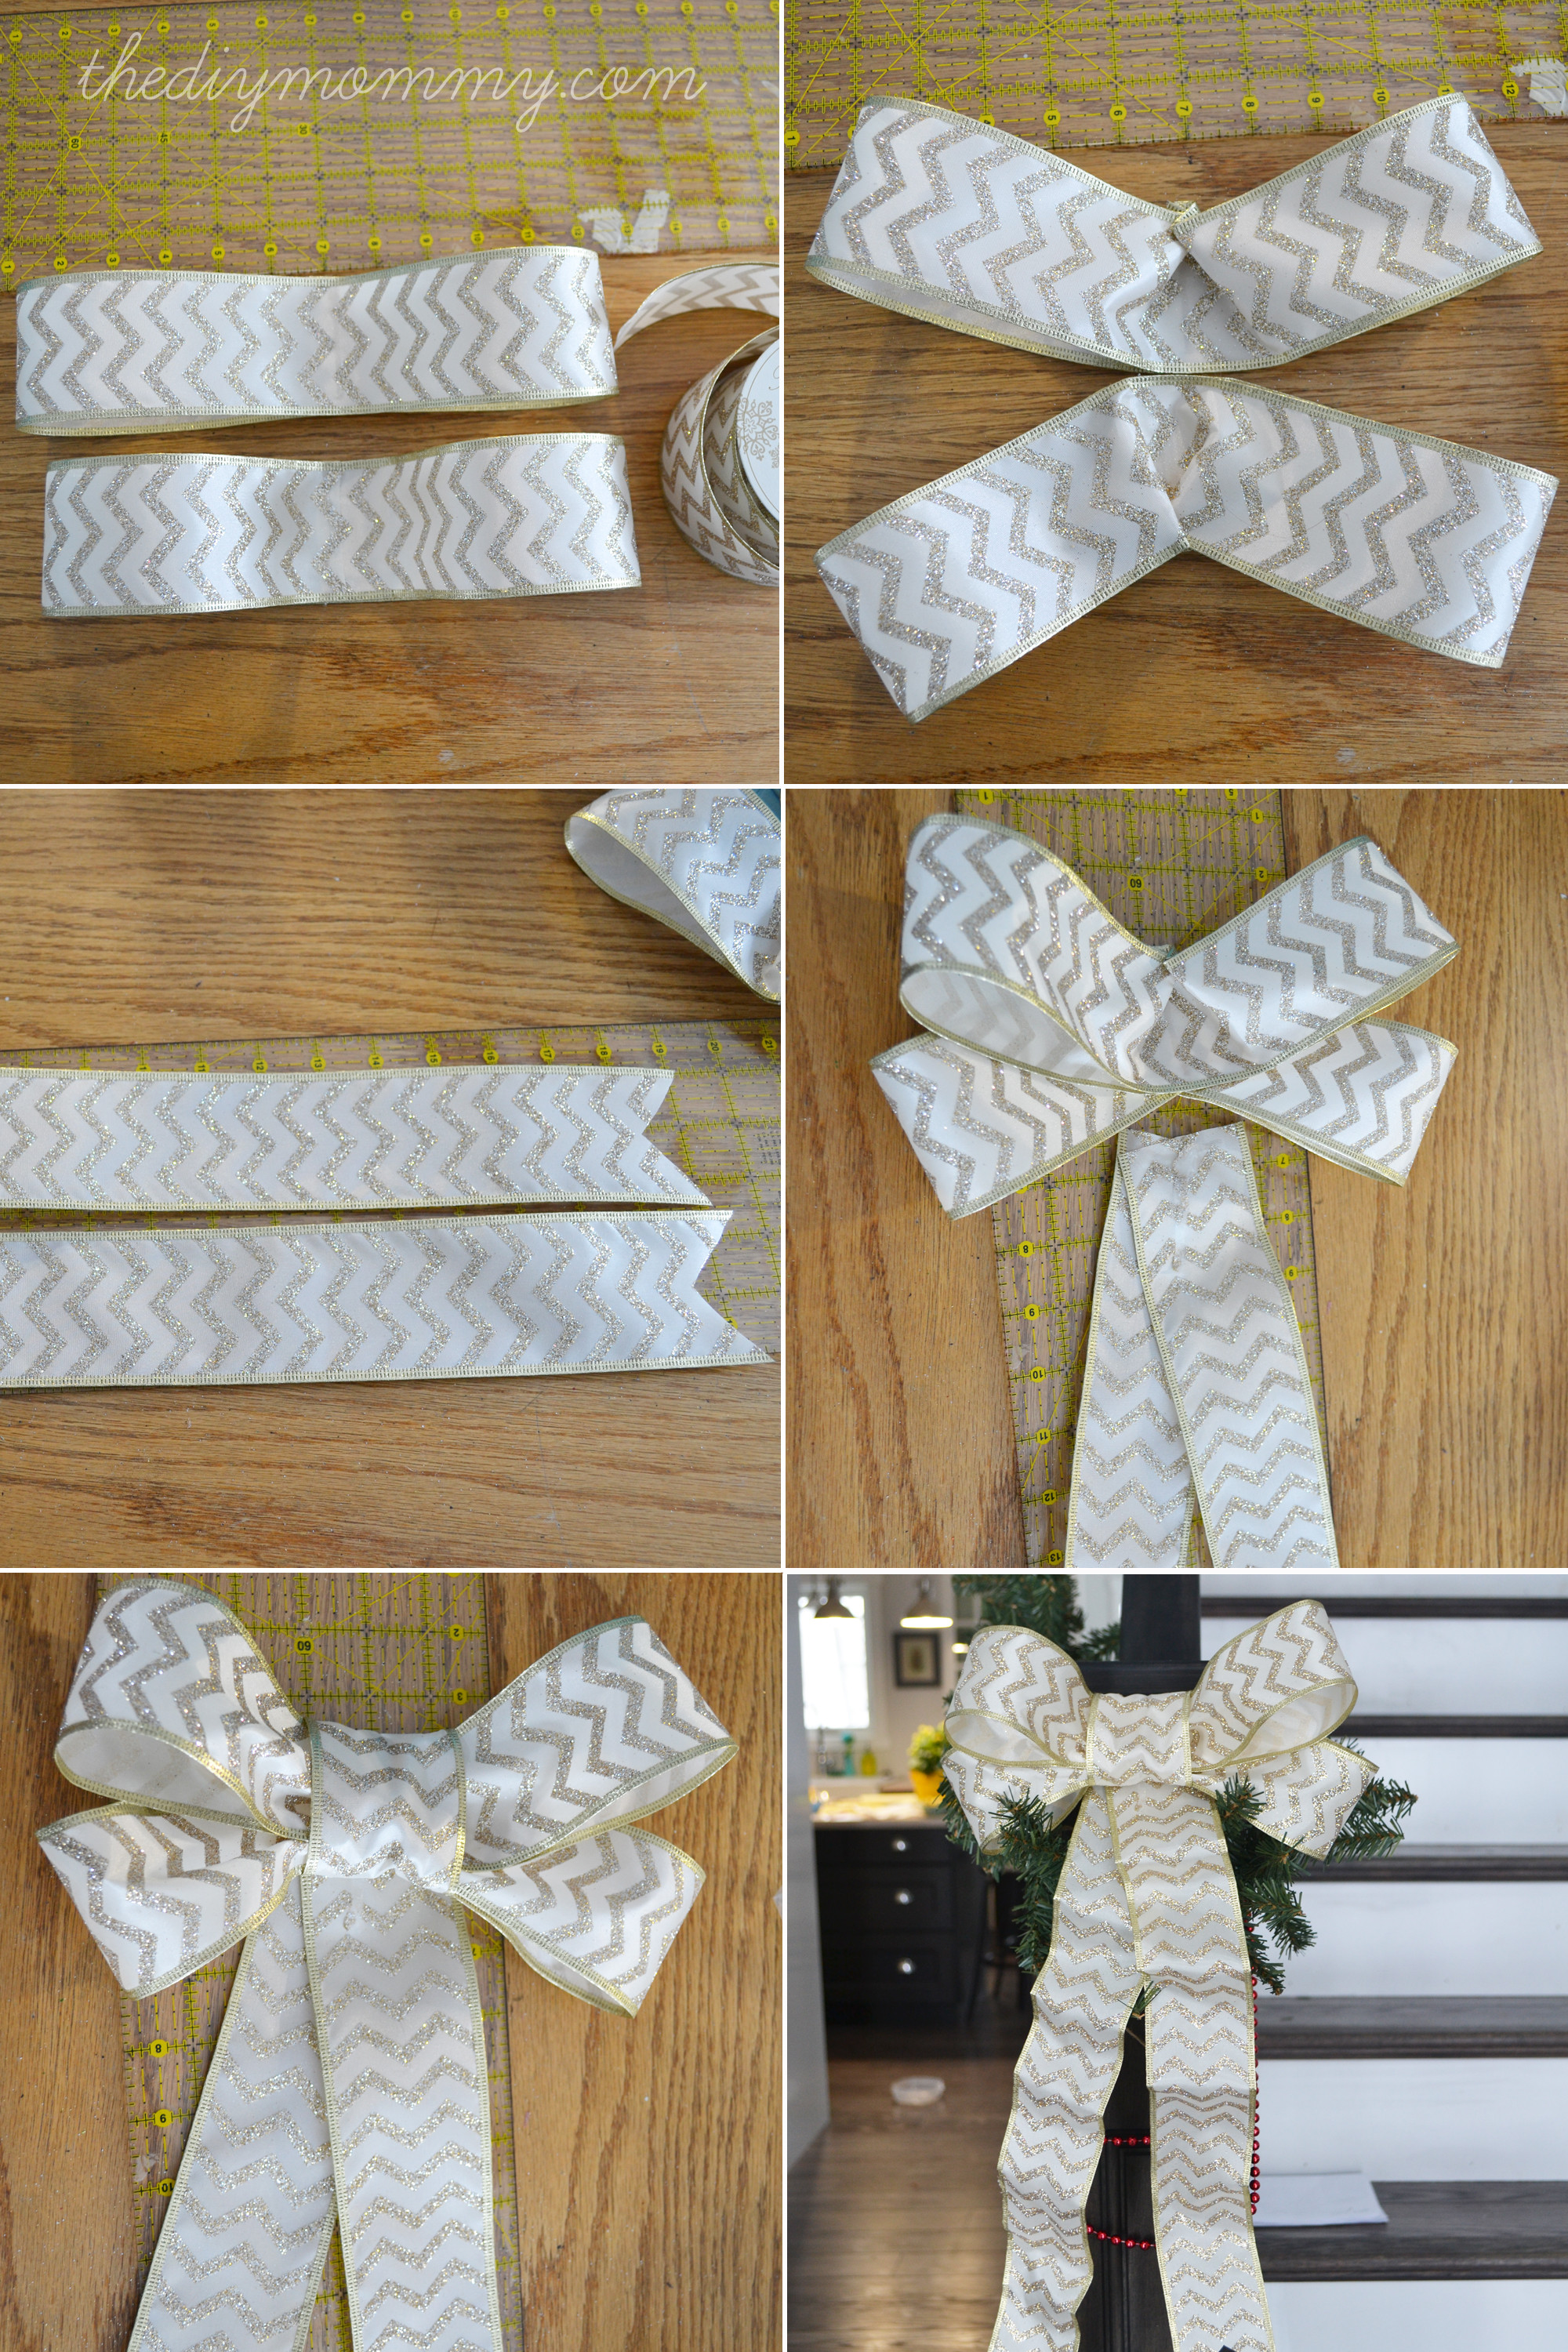 Best ideas about DIY Christmas Bow . Save or Pin Make DIY Wired Ribbon Bows Now.